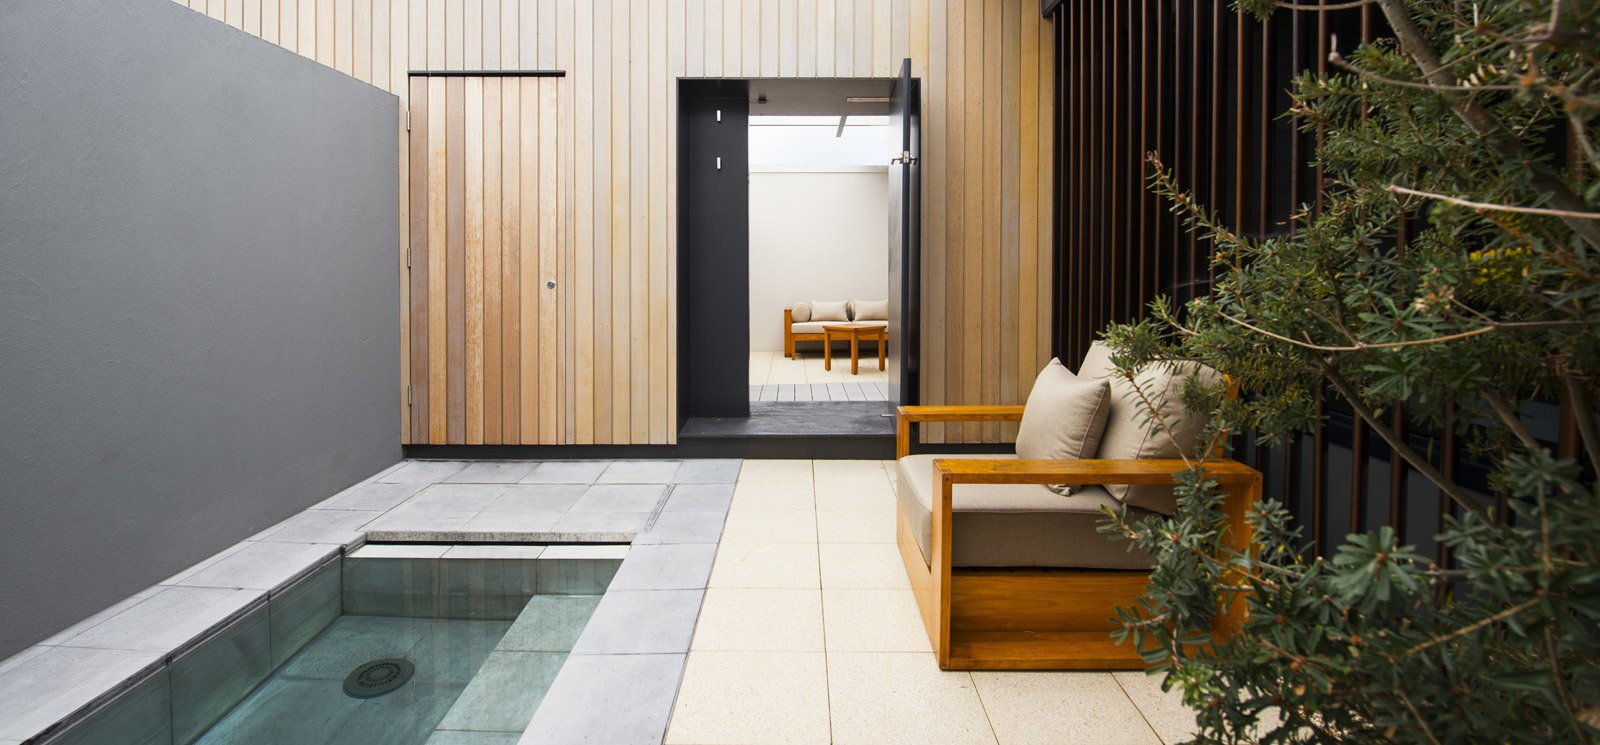 Photo 5 of 10 in This Modern Tasmanian Resort  Reflects the Natural Forms Surrounding It